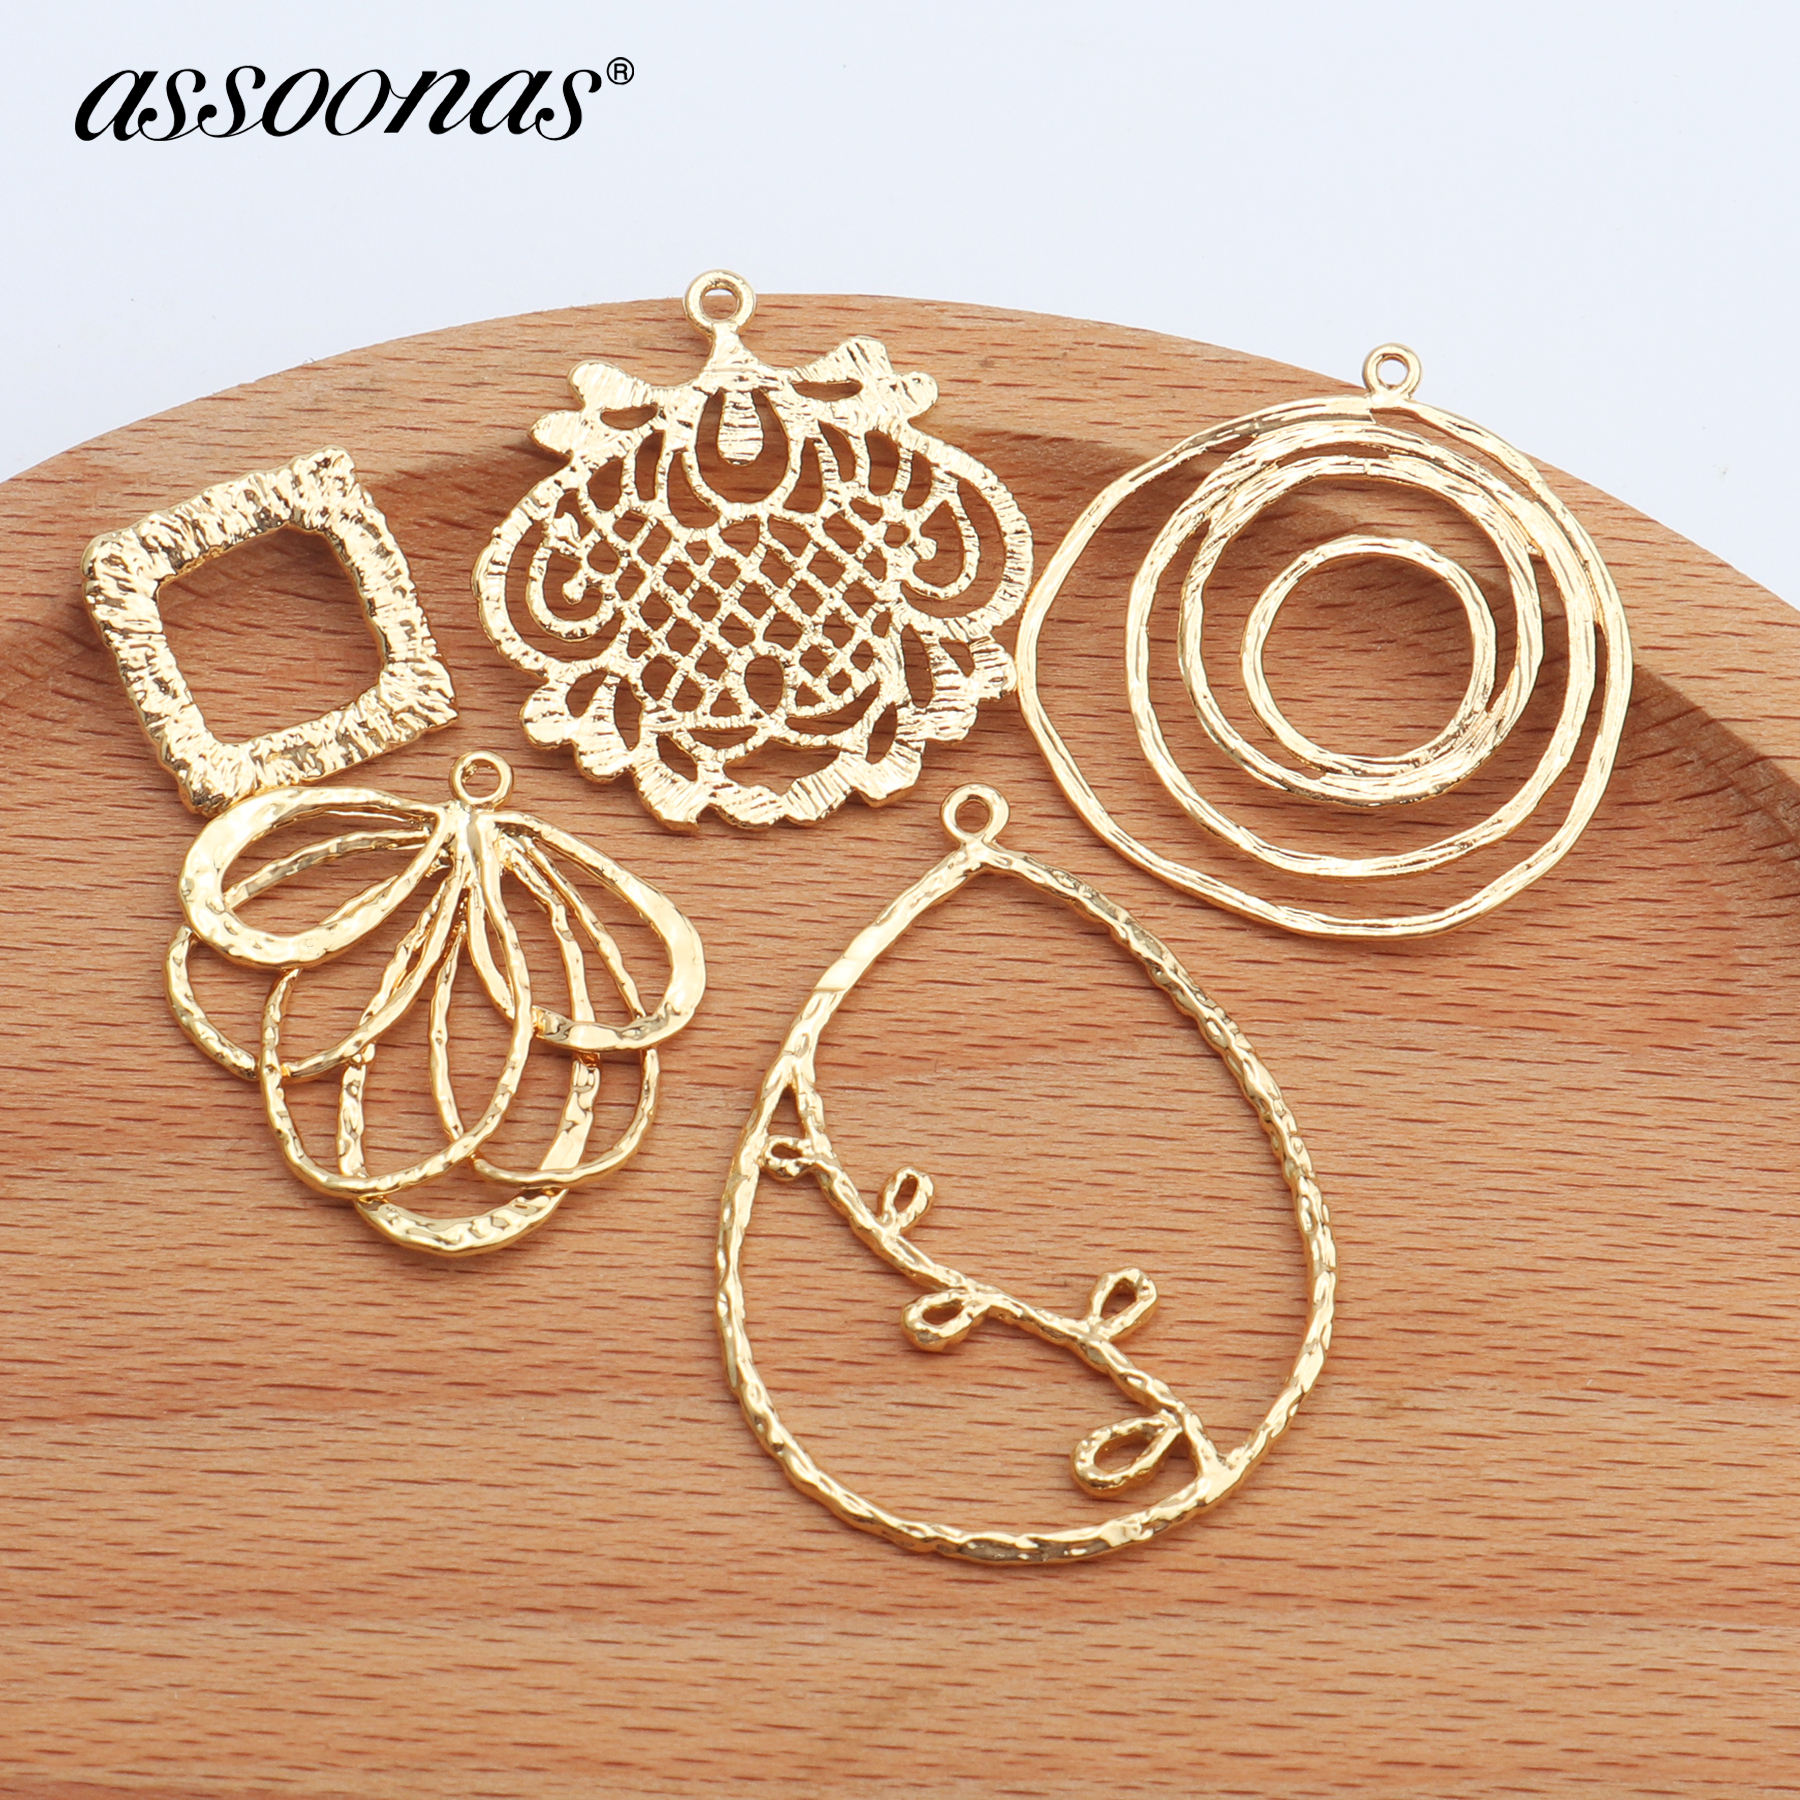 Assoonas M324,jewelry Accessories,accessories Parts,jewelry Making,charms,hand Made,diy Earrings,jewelry Findings 10pcs/lot